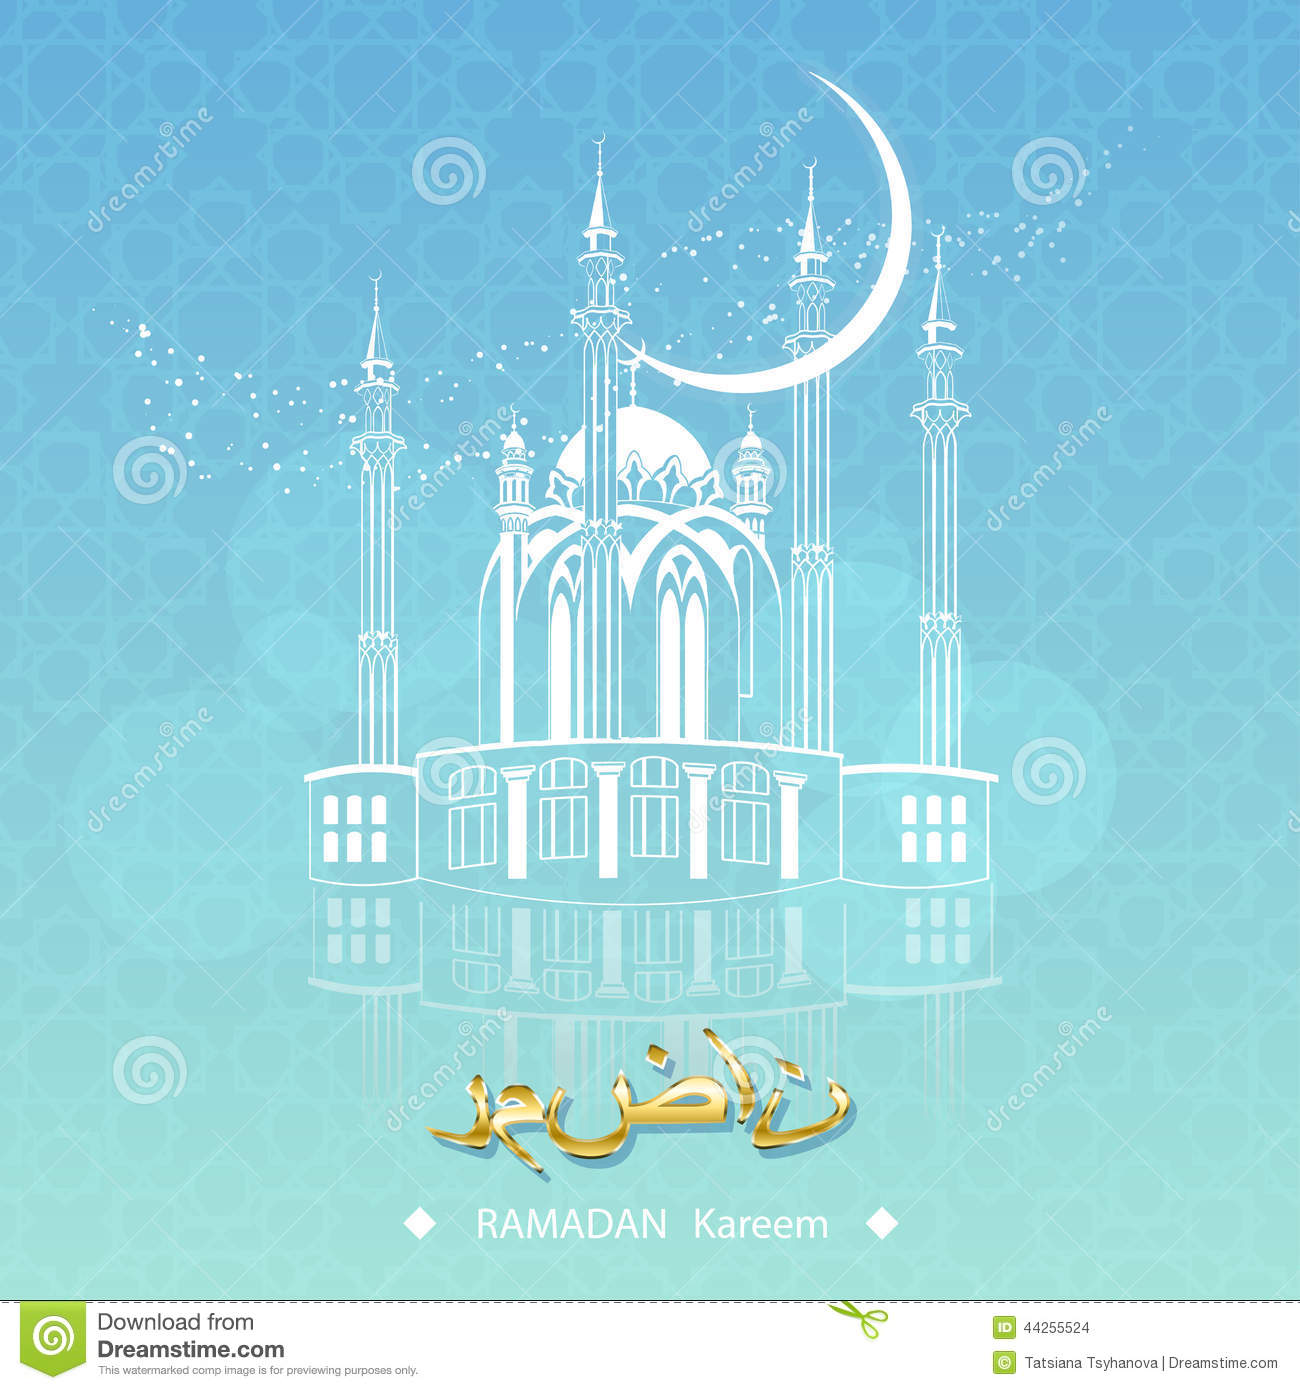 Most Inspiring Board Eid Al-Fitr Decorations - eid-ul-fitr-eid-mubarak-greeting-card-arabic-pattern-decorated-light-beige-background-mosque-morning-nature-background-holy-44255524  Gallery_635184 .jpg